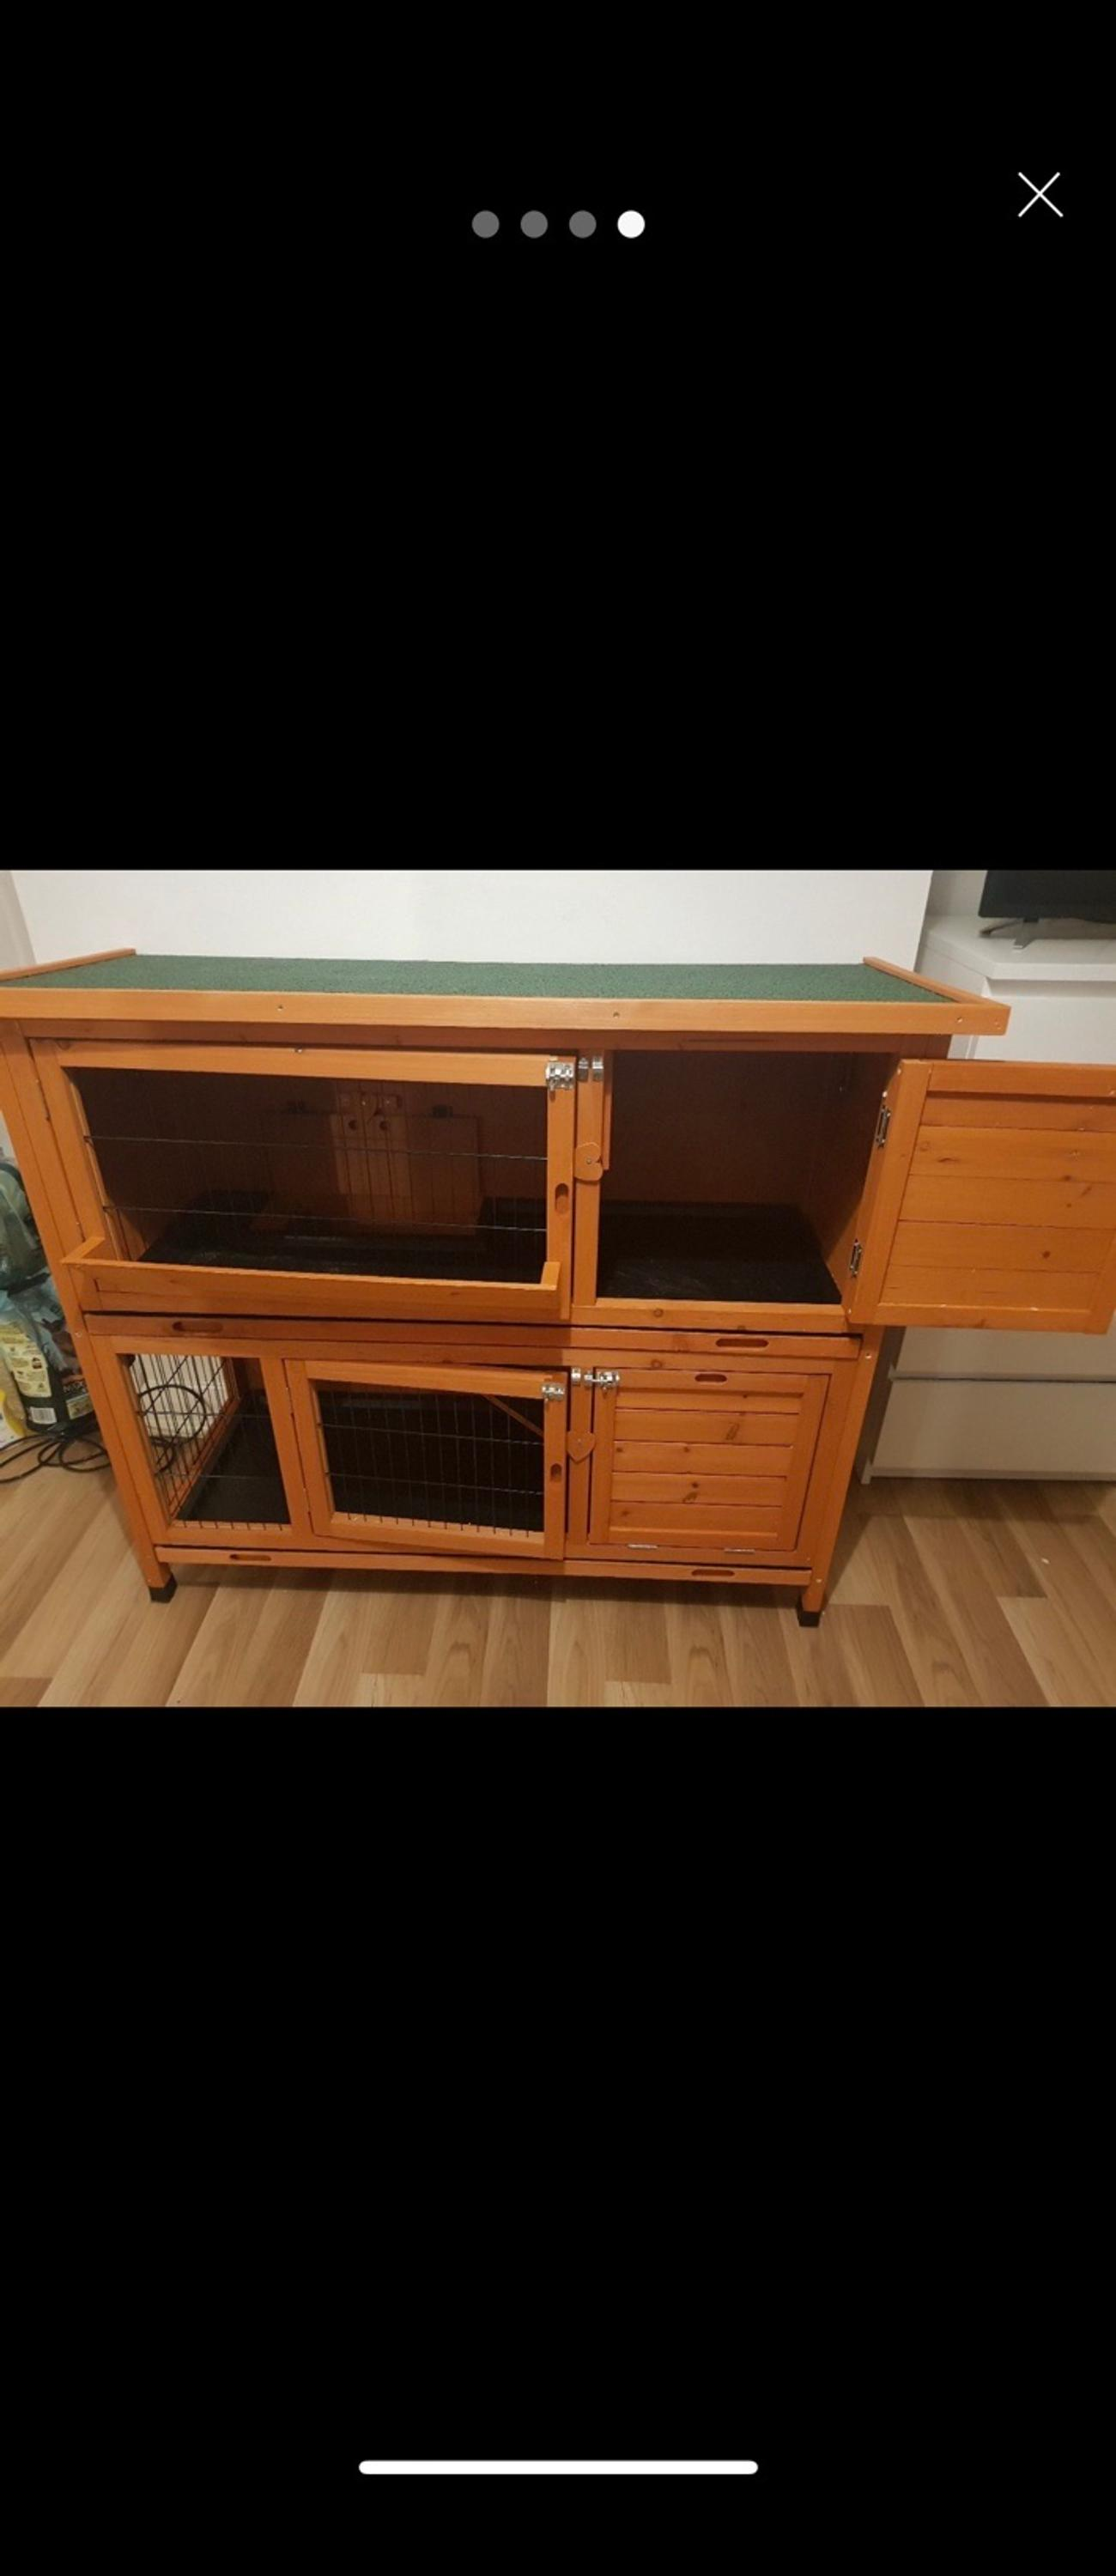 Selling my rabbit hutch no longer need it used for 1 week. Size around 4 ft wide. Price £80